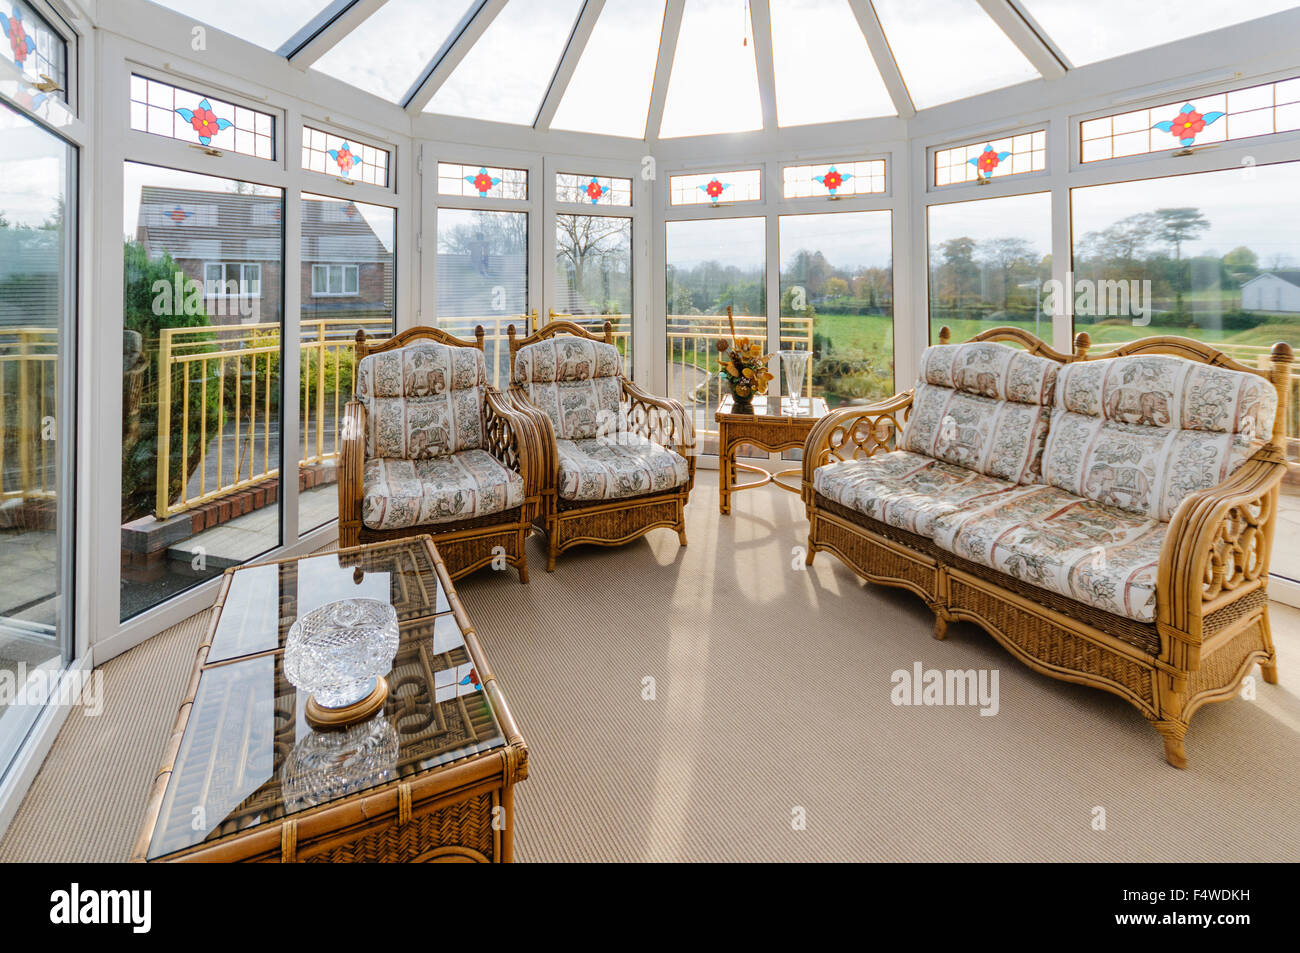 Household Conservatory With Cane Furniture   Stock Image